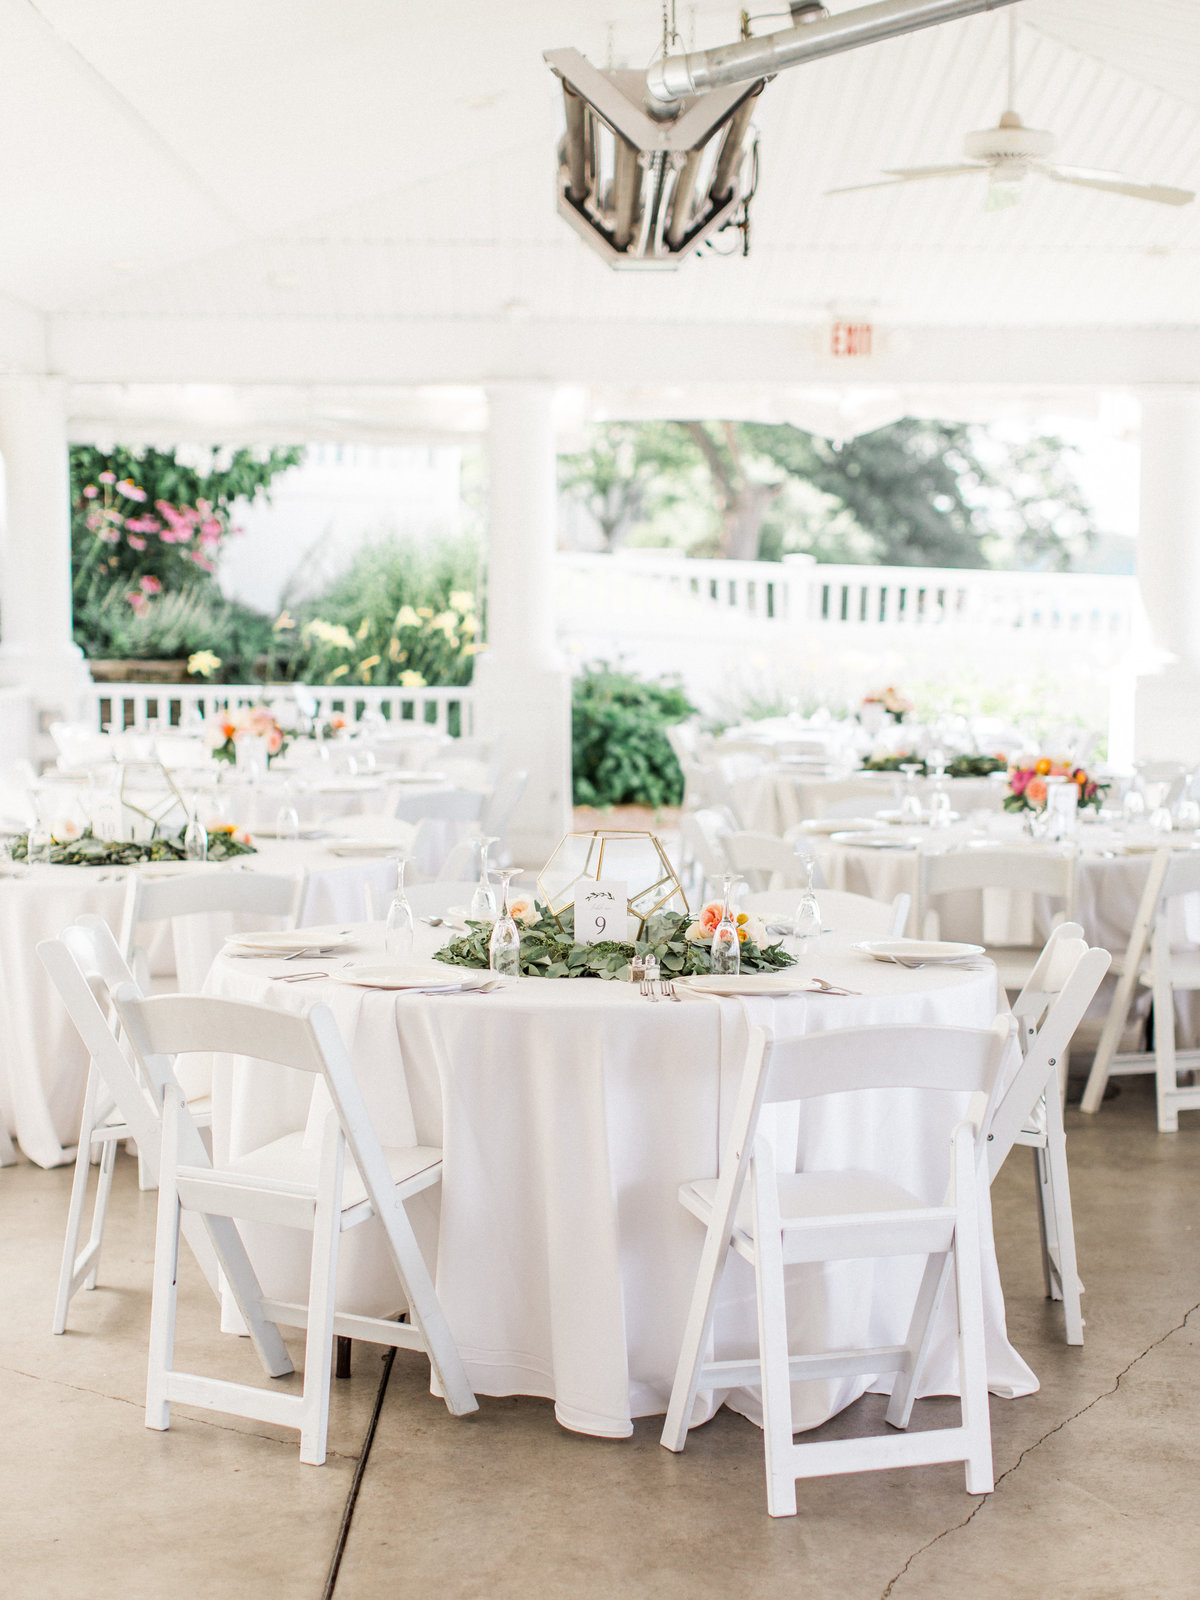 Every Little Detail - Michigan Wedding Planning and Event Design37